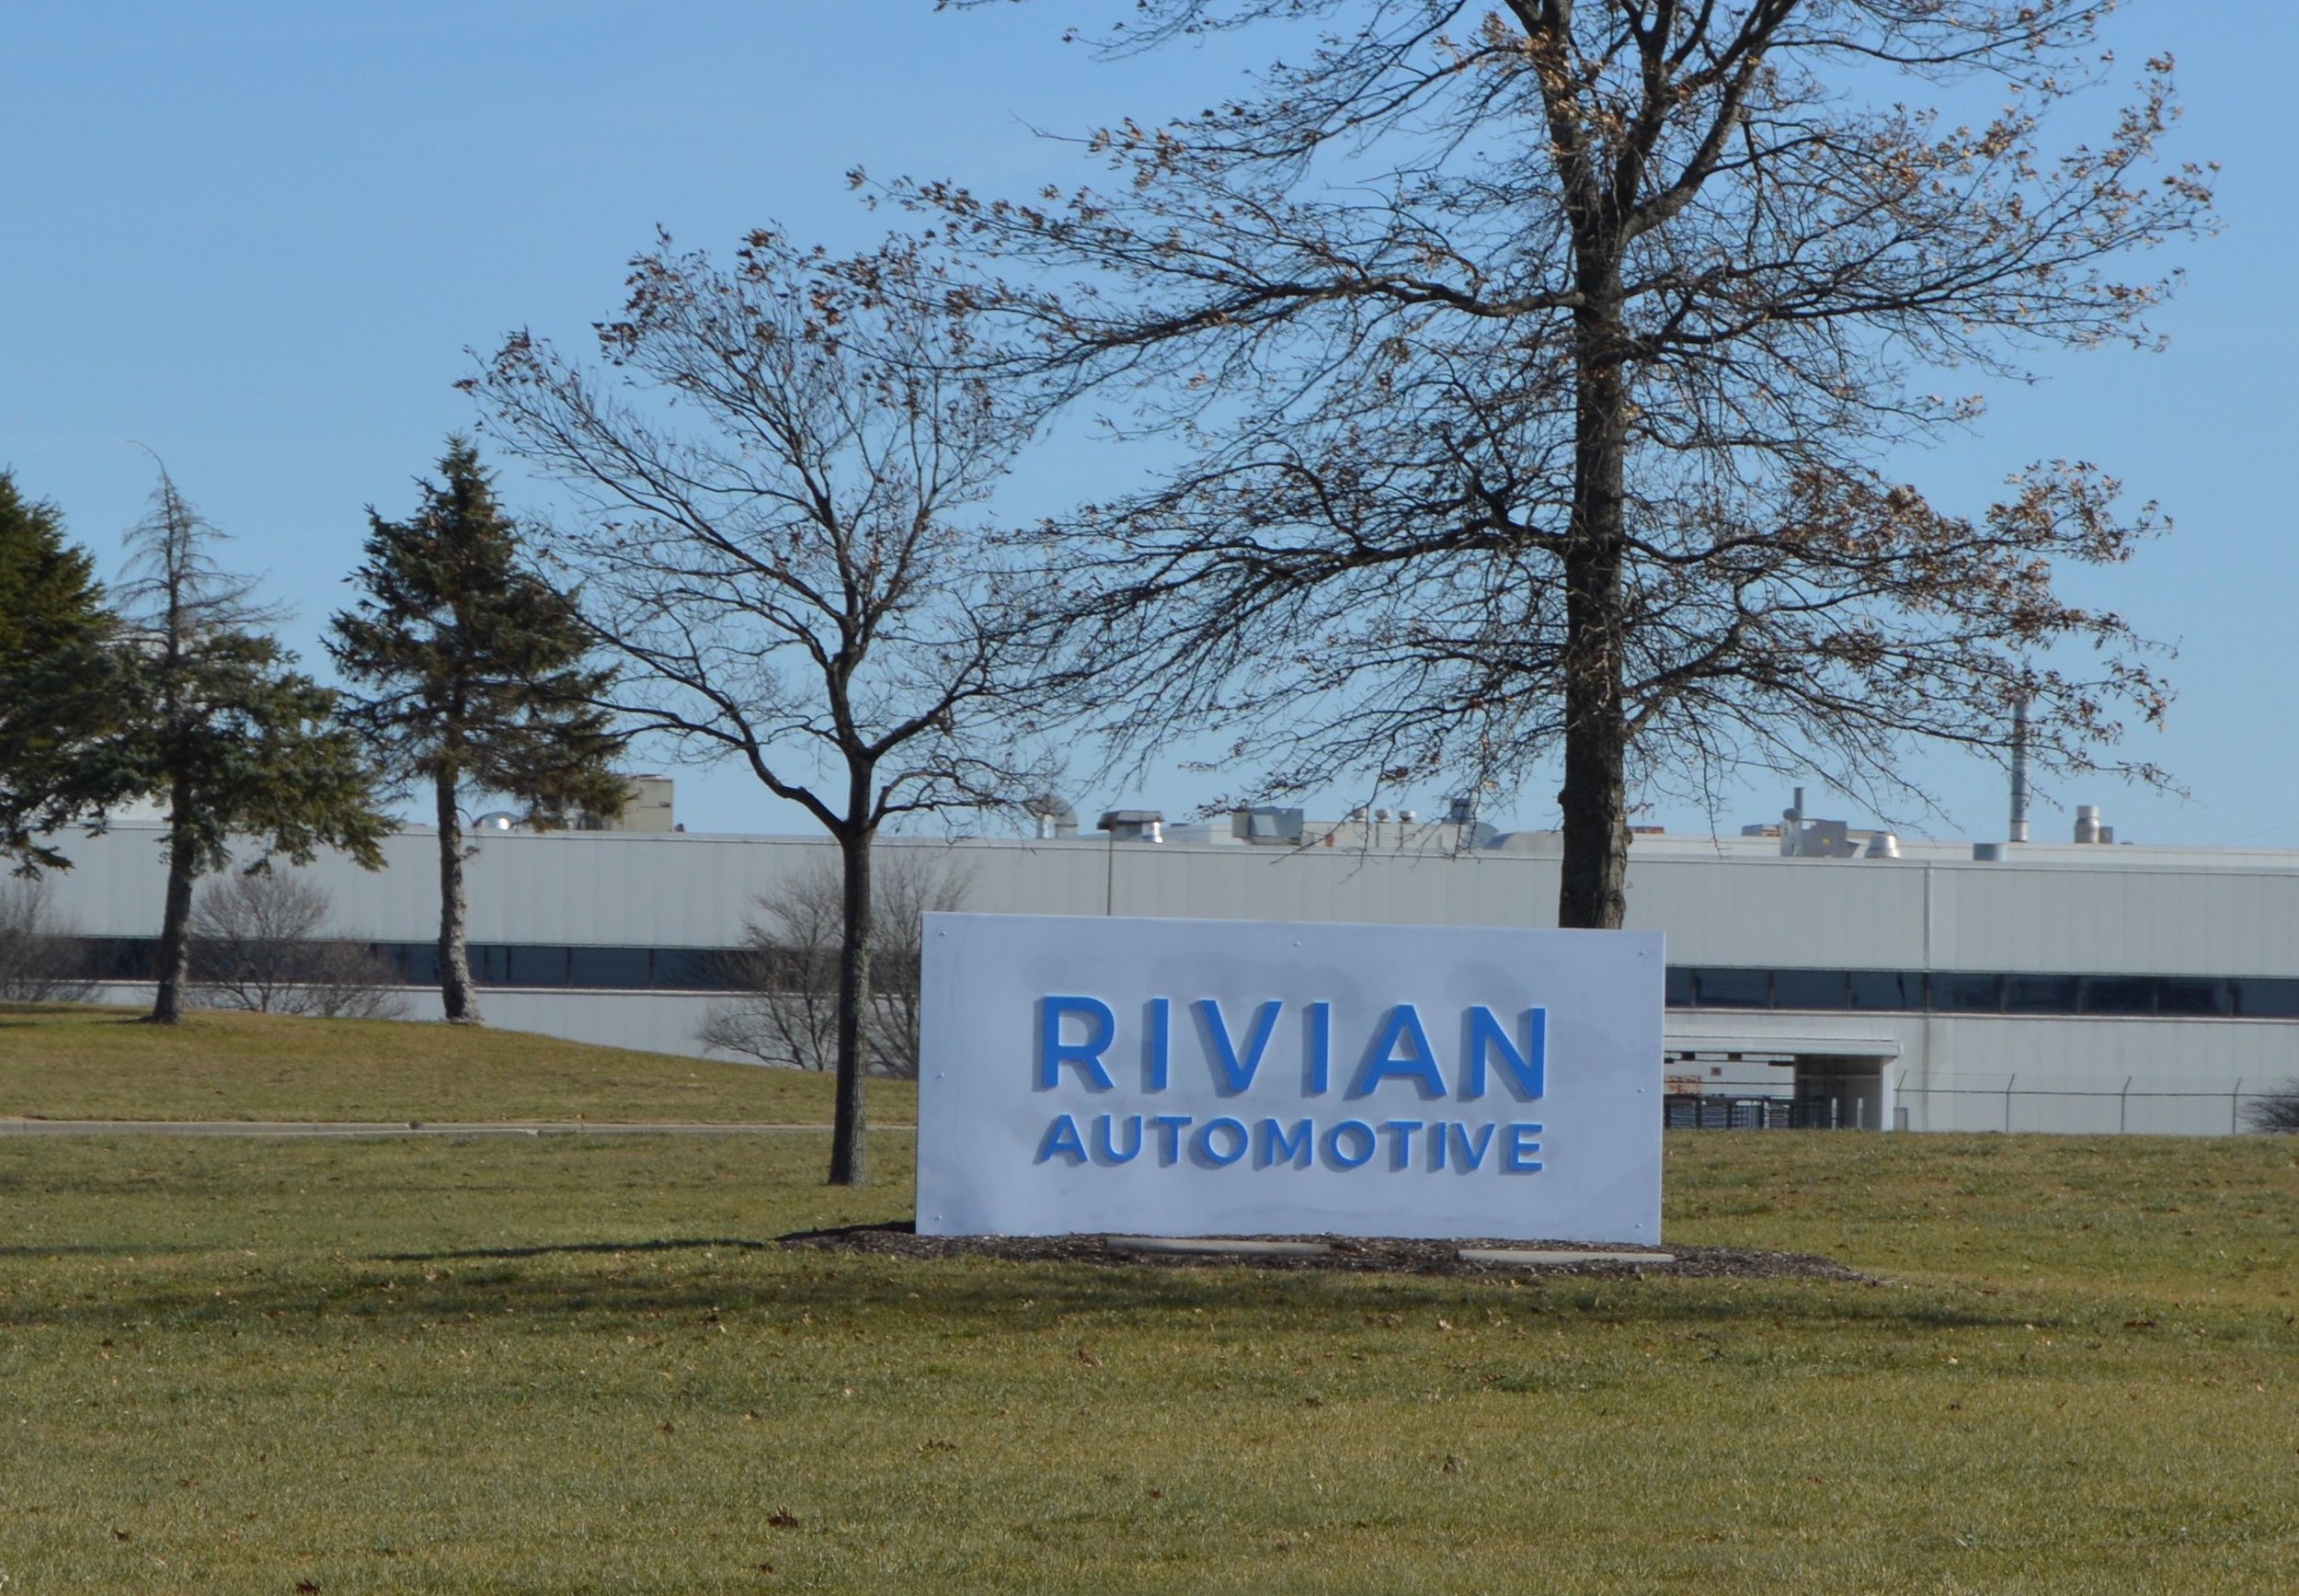 While the Rivian plant is relatively quiet, the company has big plans to bring it back to its glory days. (Christian Prenzler for AdaptBN)